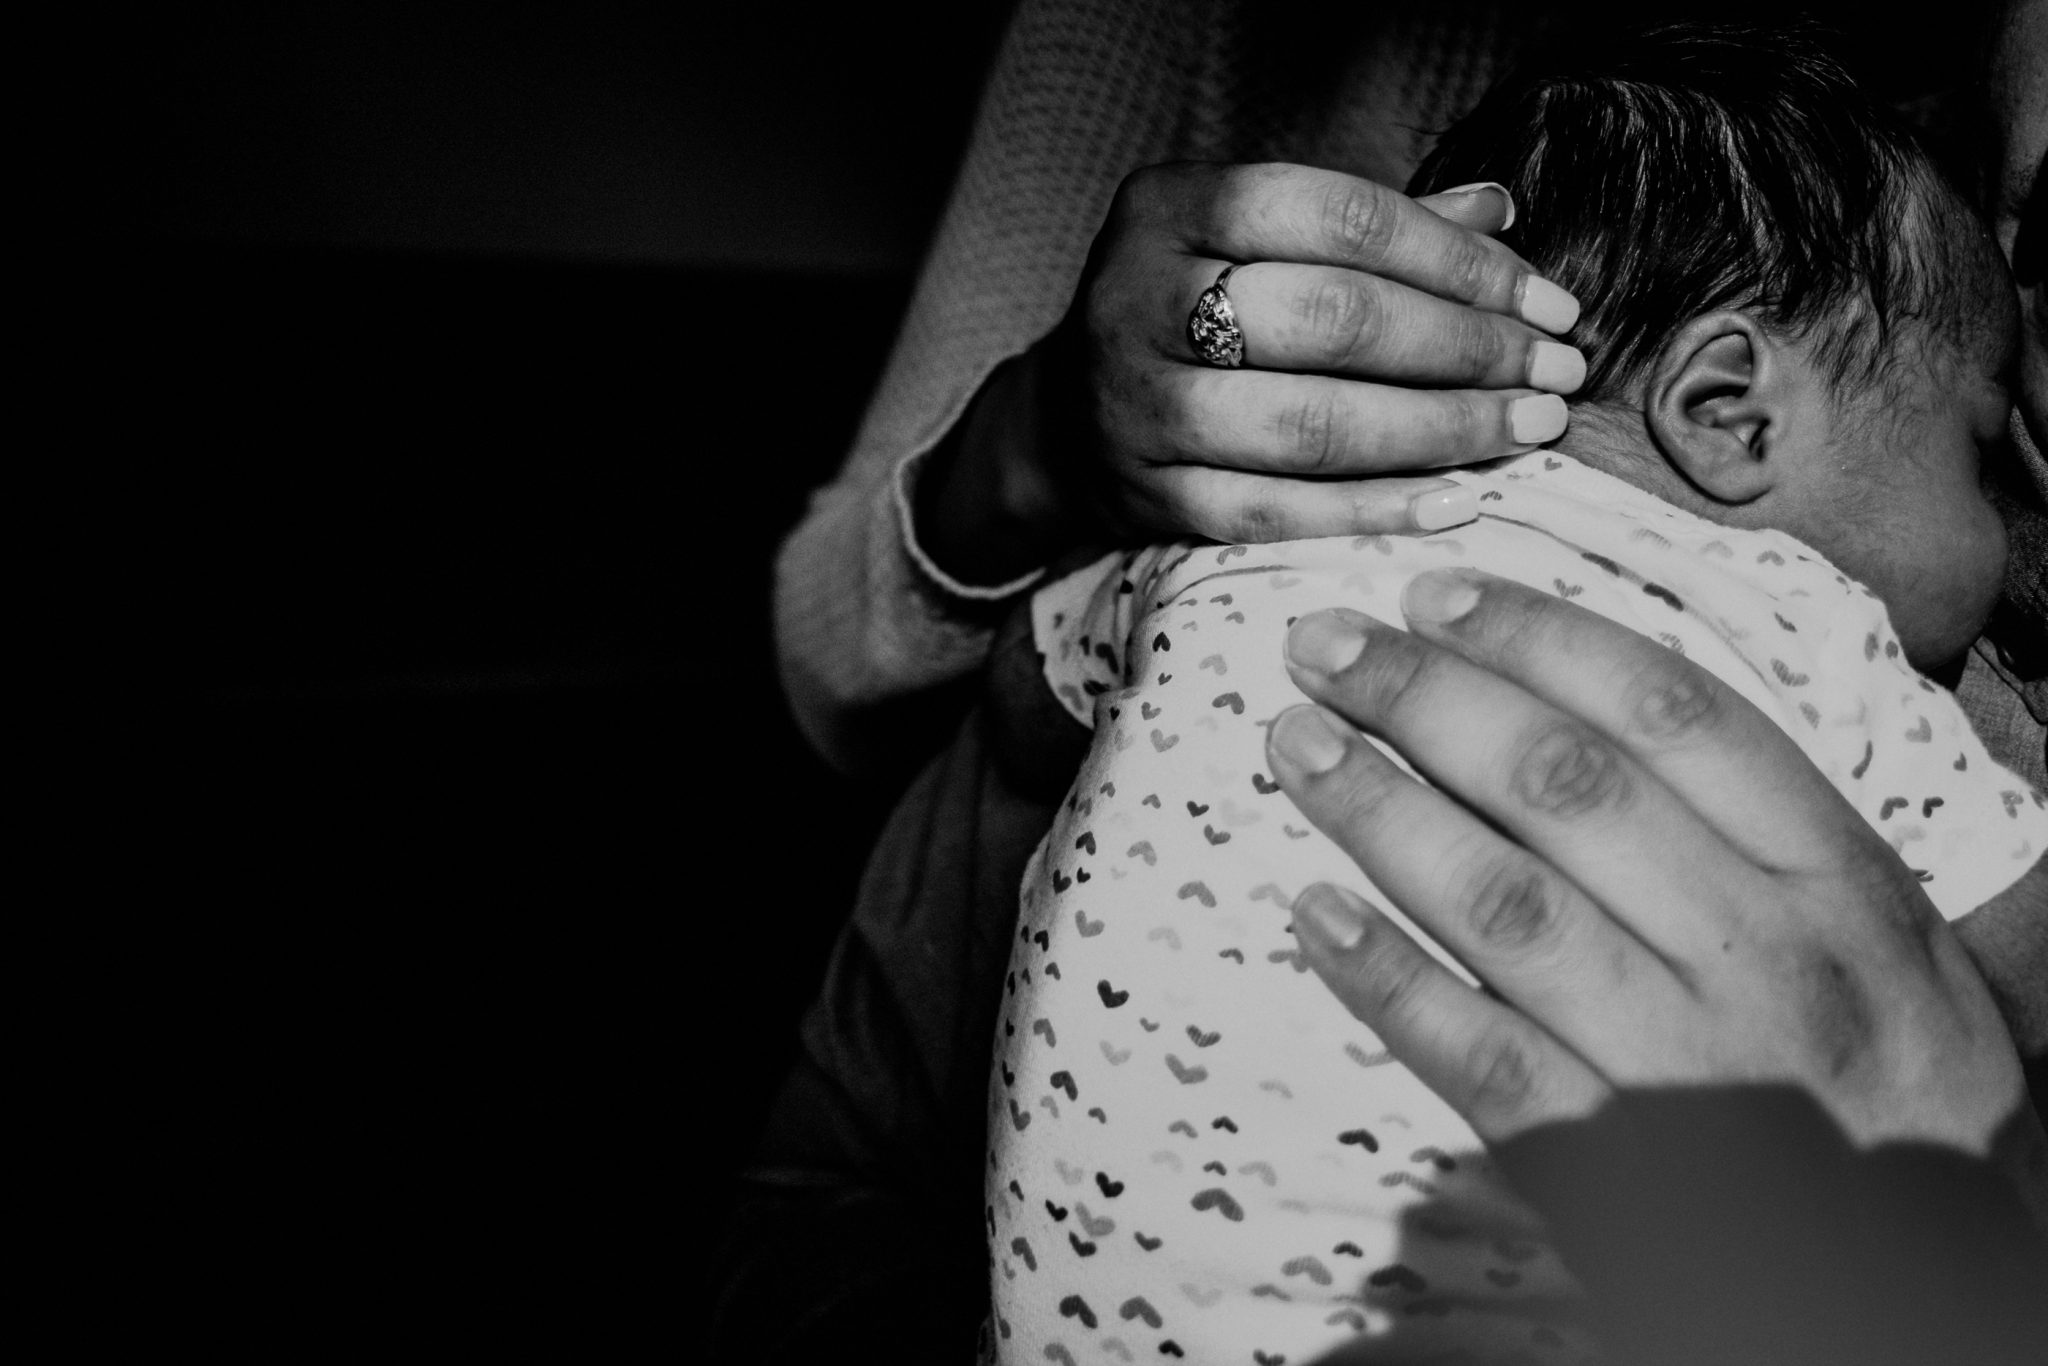 closeup of mother and father's hands on newborn baby, black and white photo